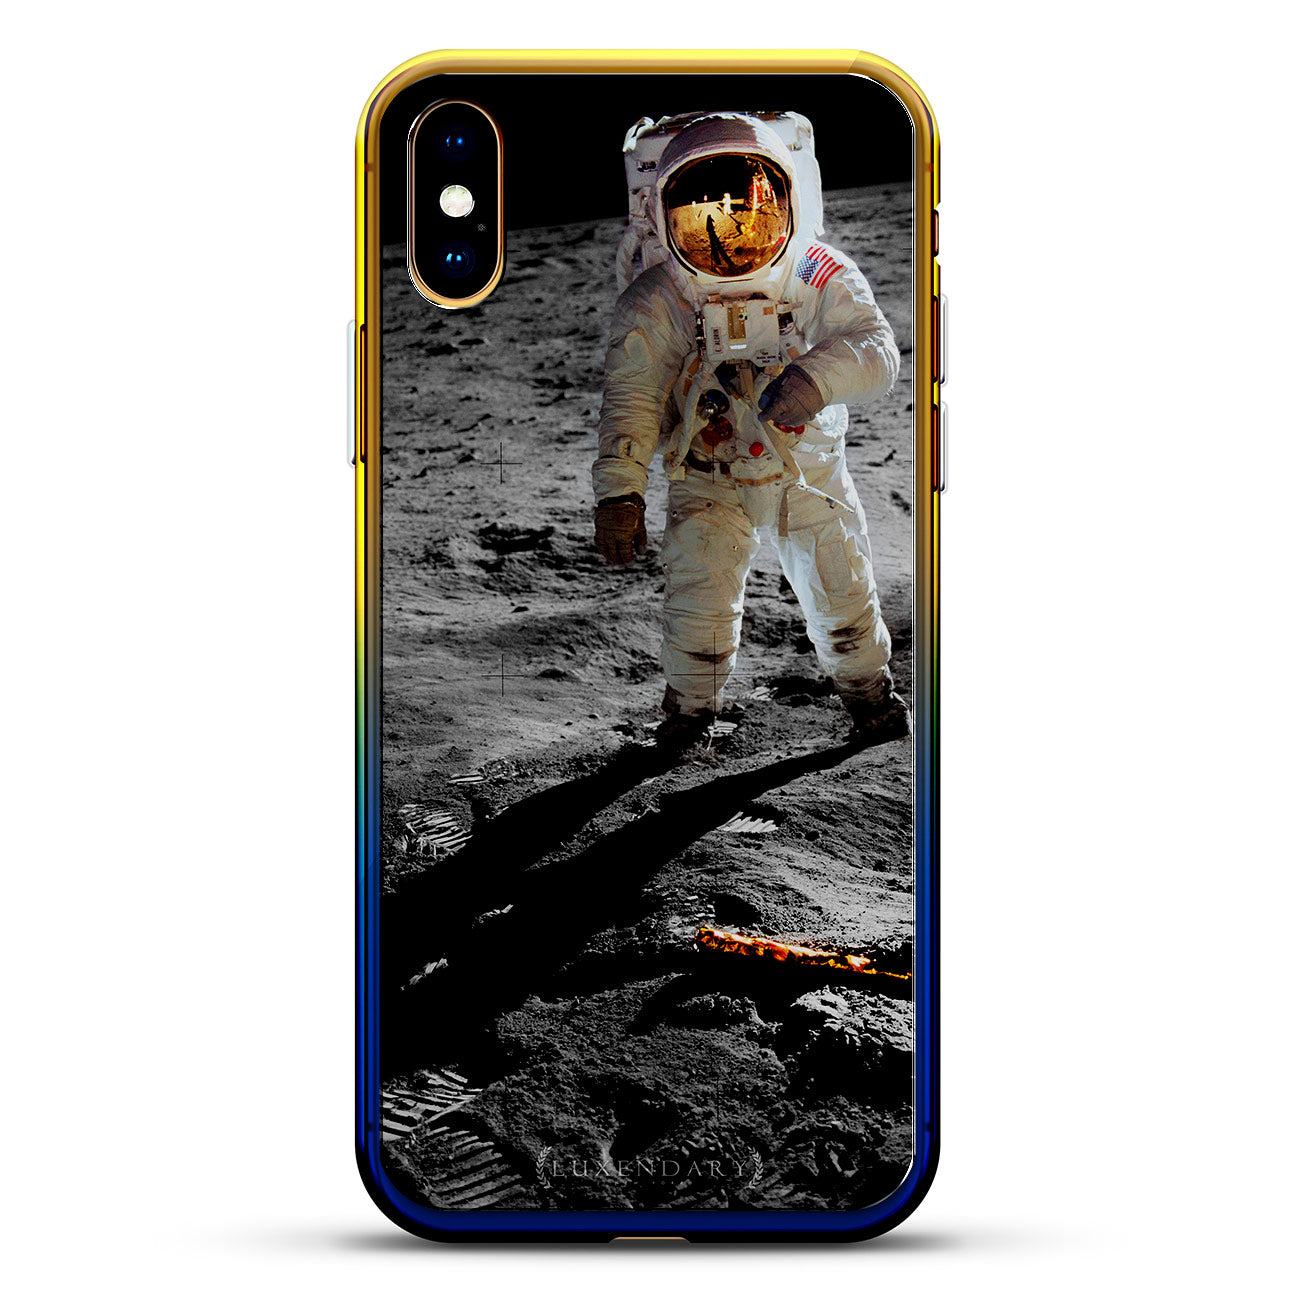 SPACE: ASTRONAUT THE MOON